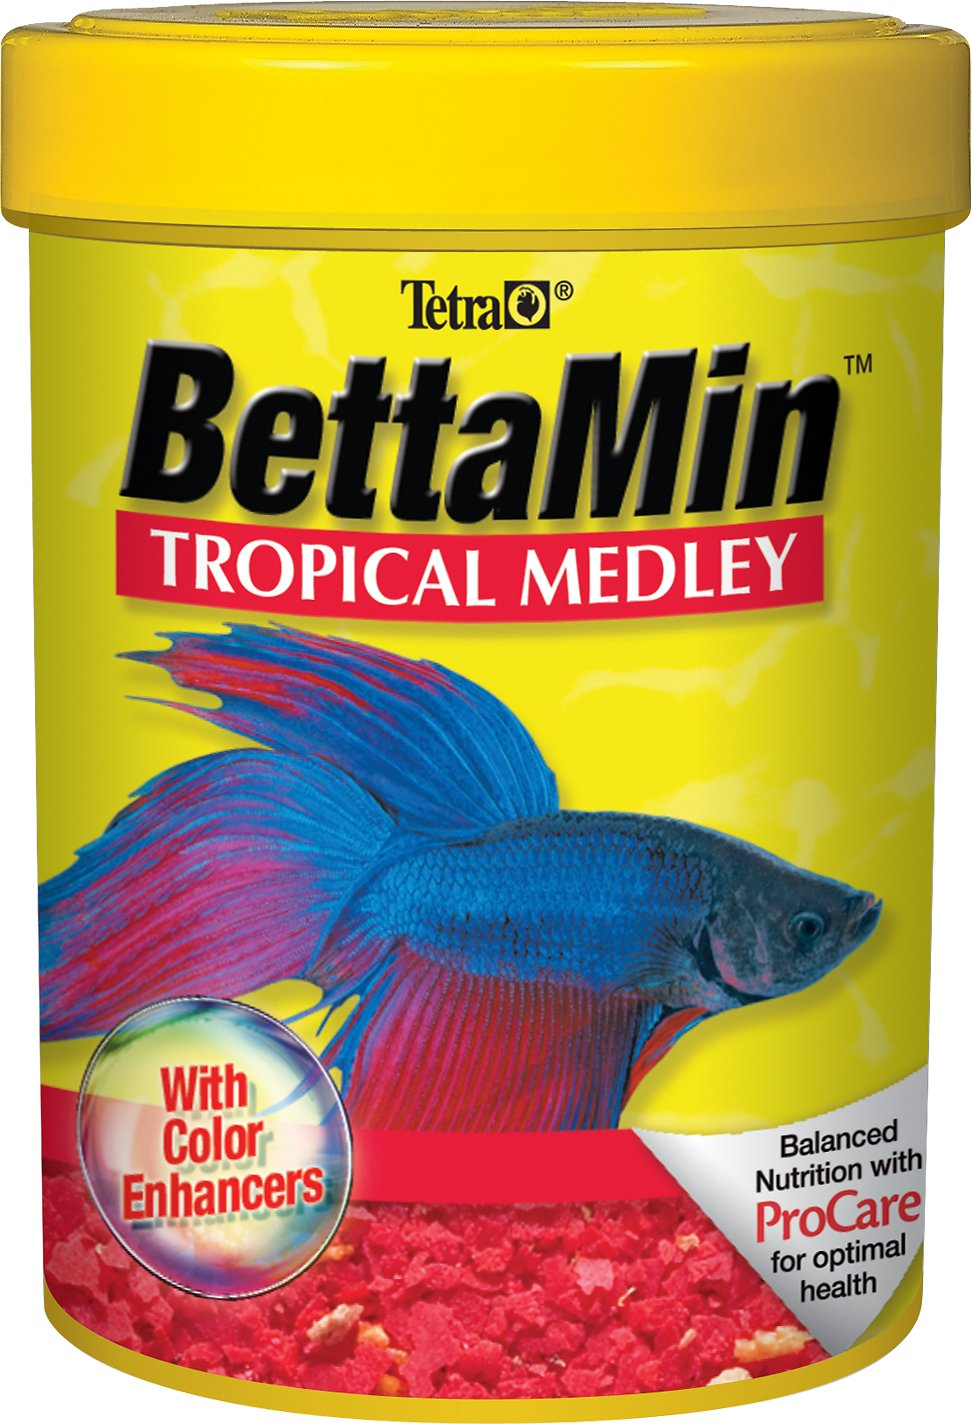 Tetra BettaMin Tropical Medley Color Enhancing Fish Food, .81-oz jar